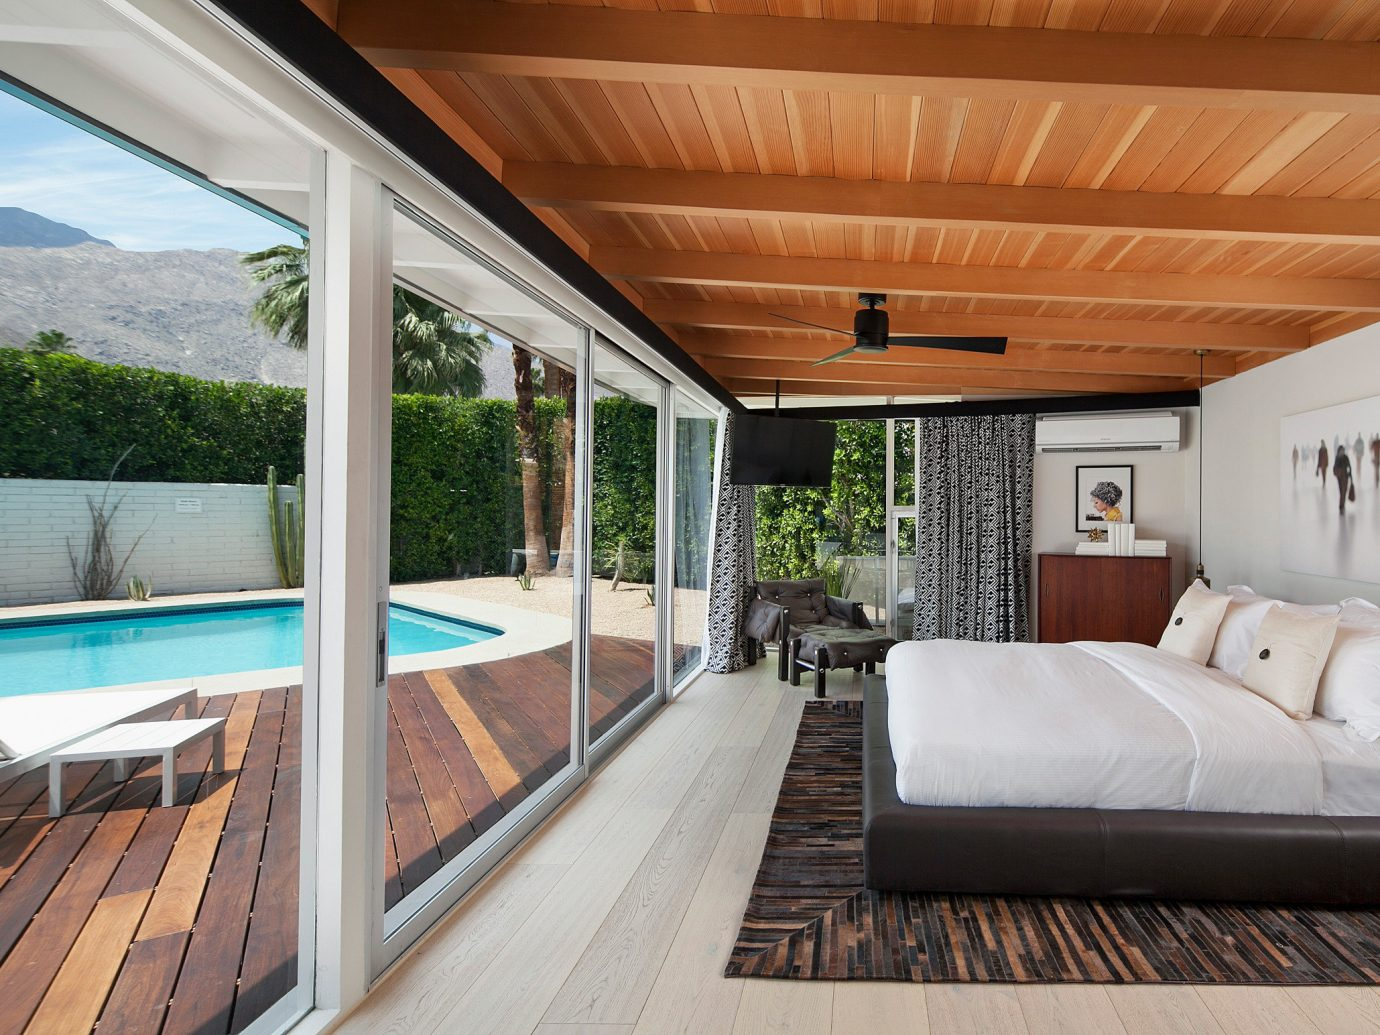 Hotels Romance bed property ceiling Architecture real estate estate interior design house window home wood roof outdoor structure platform daylighting Patio floor penthouse apartment Villa